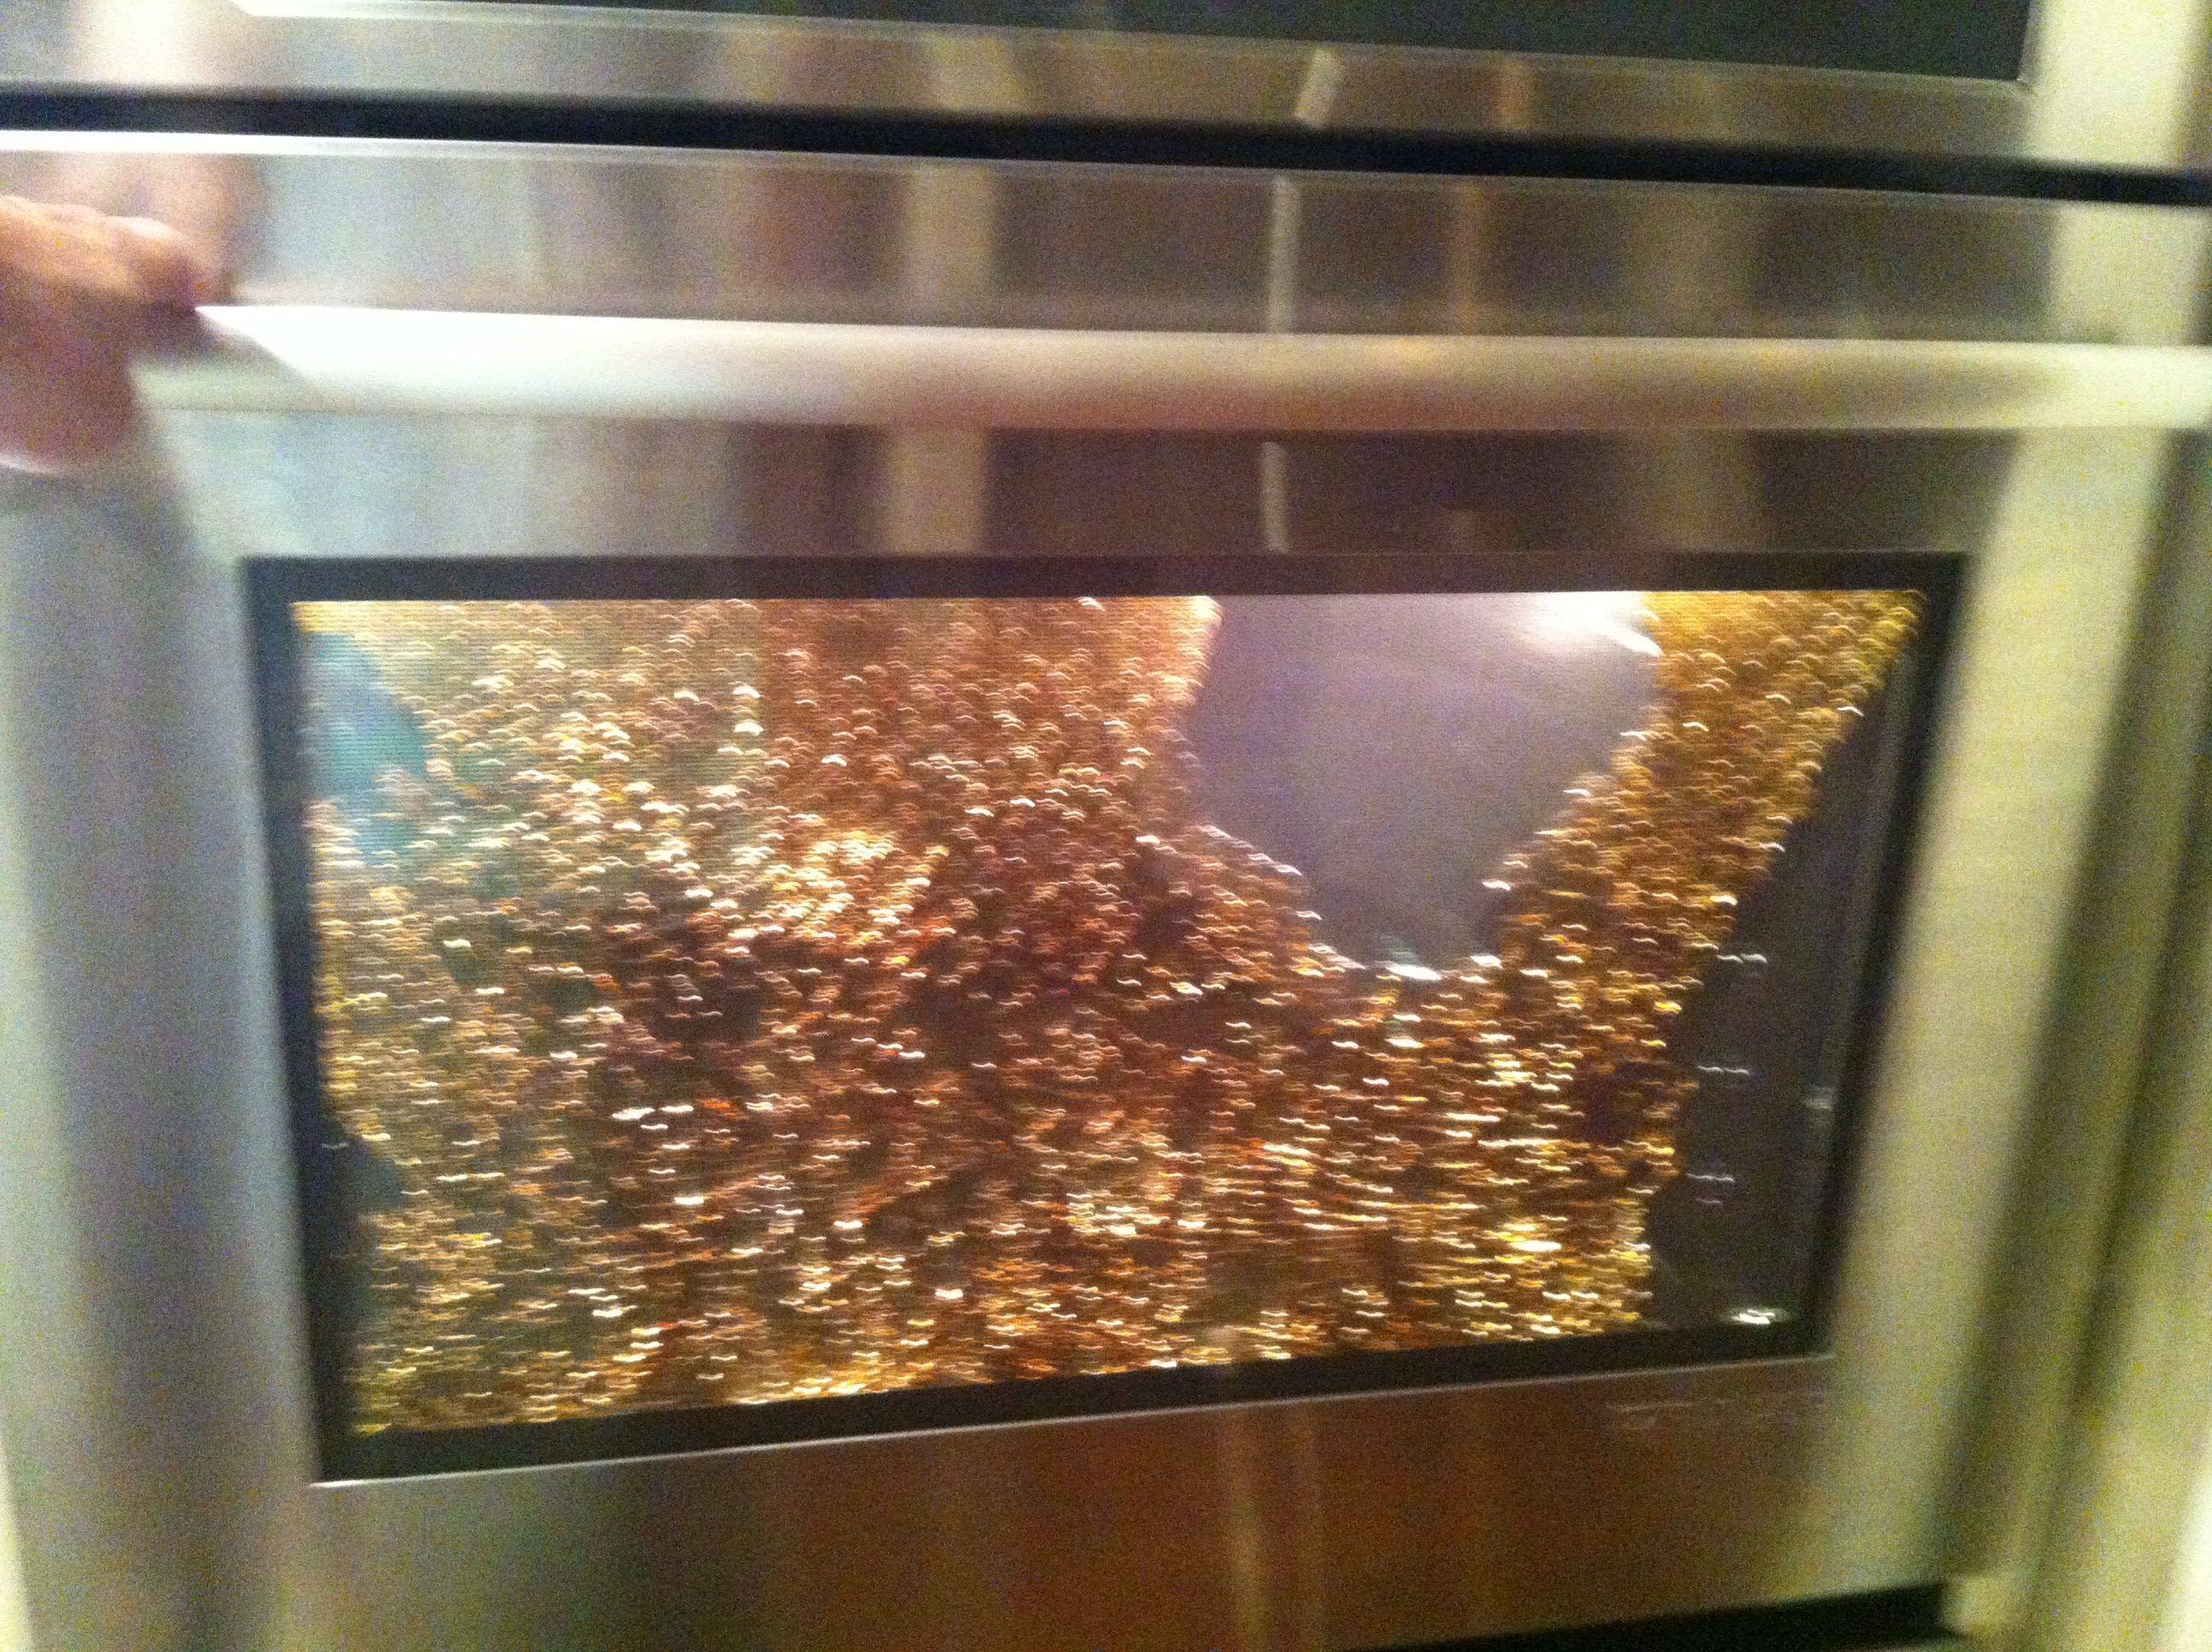 Oven glass door replacement door naturally top 180 complaints and reviews about jenn air wall ovens and convection ovens page 2 eventelaan Images